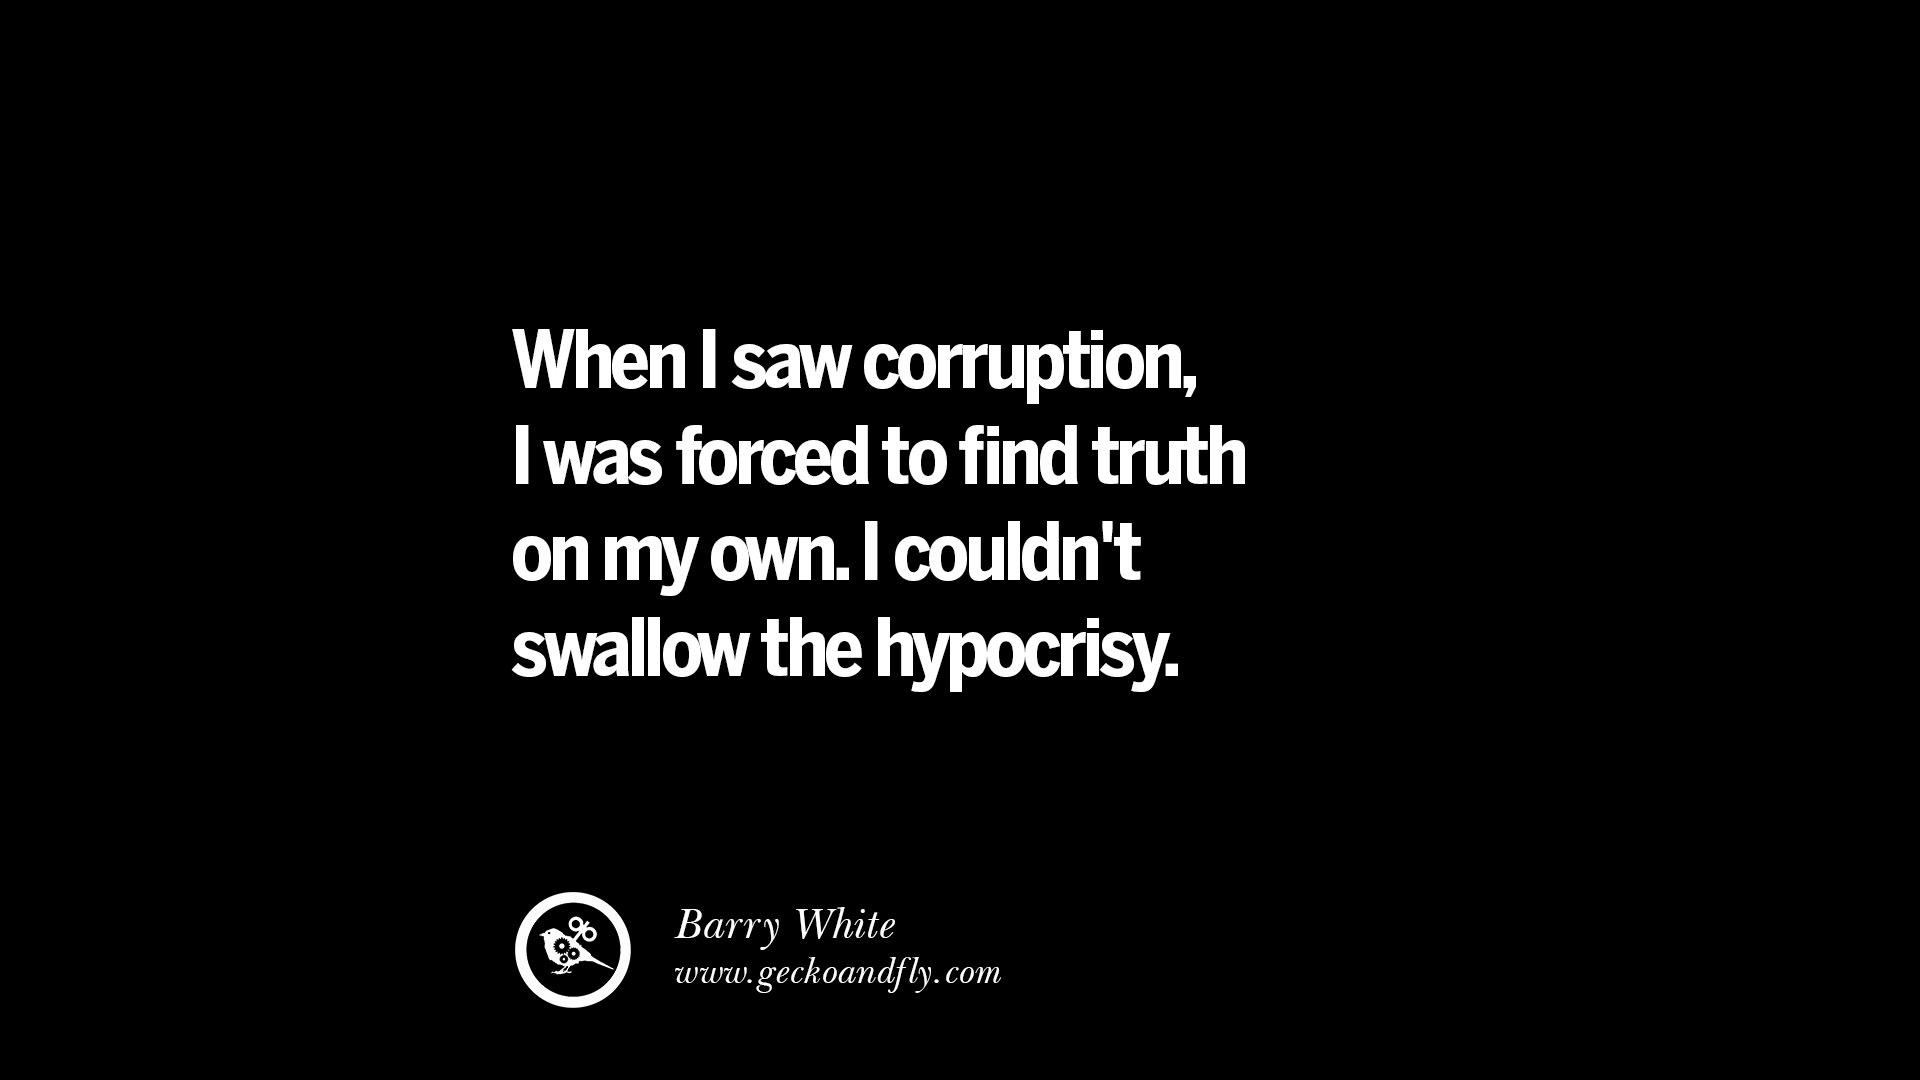 42 Anti Corruption Quotes For Politicians On Greed And Power